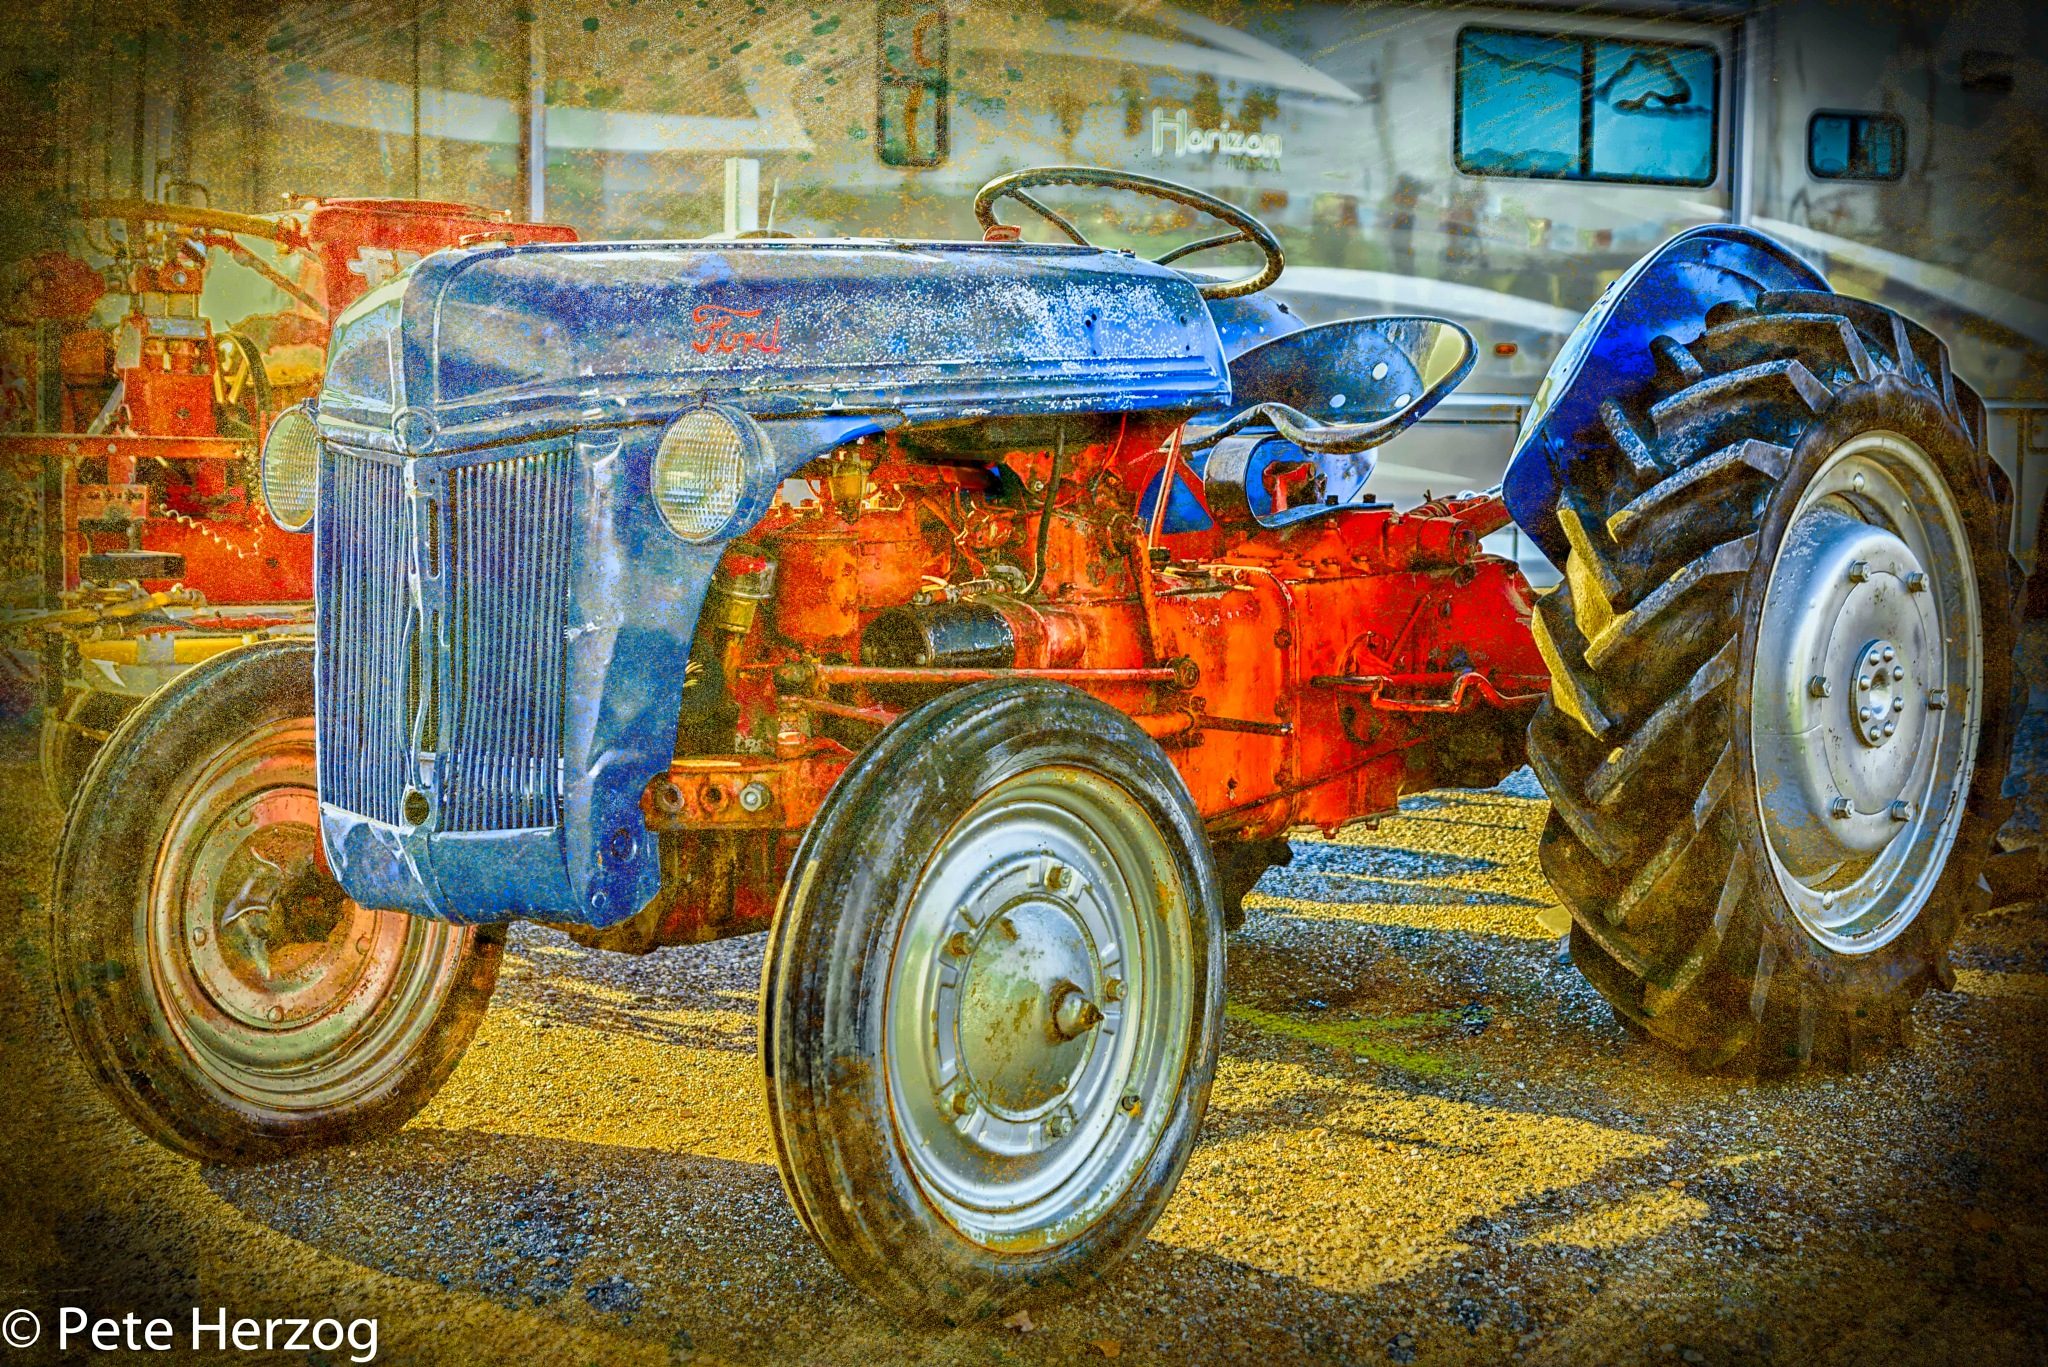 Vintage Ford Tractor by peter.herzog.3323